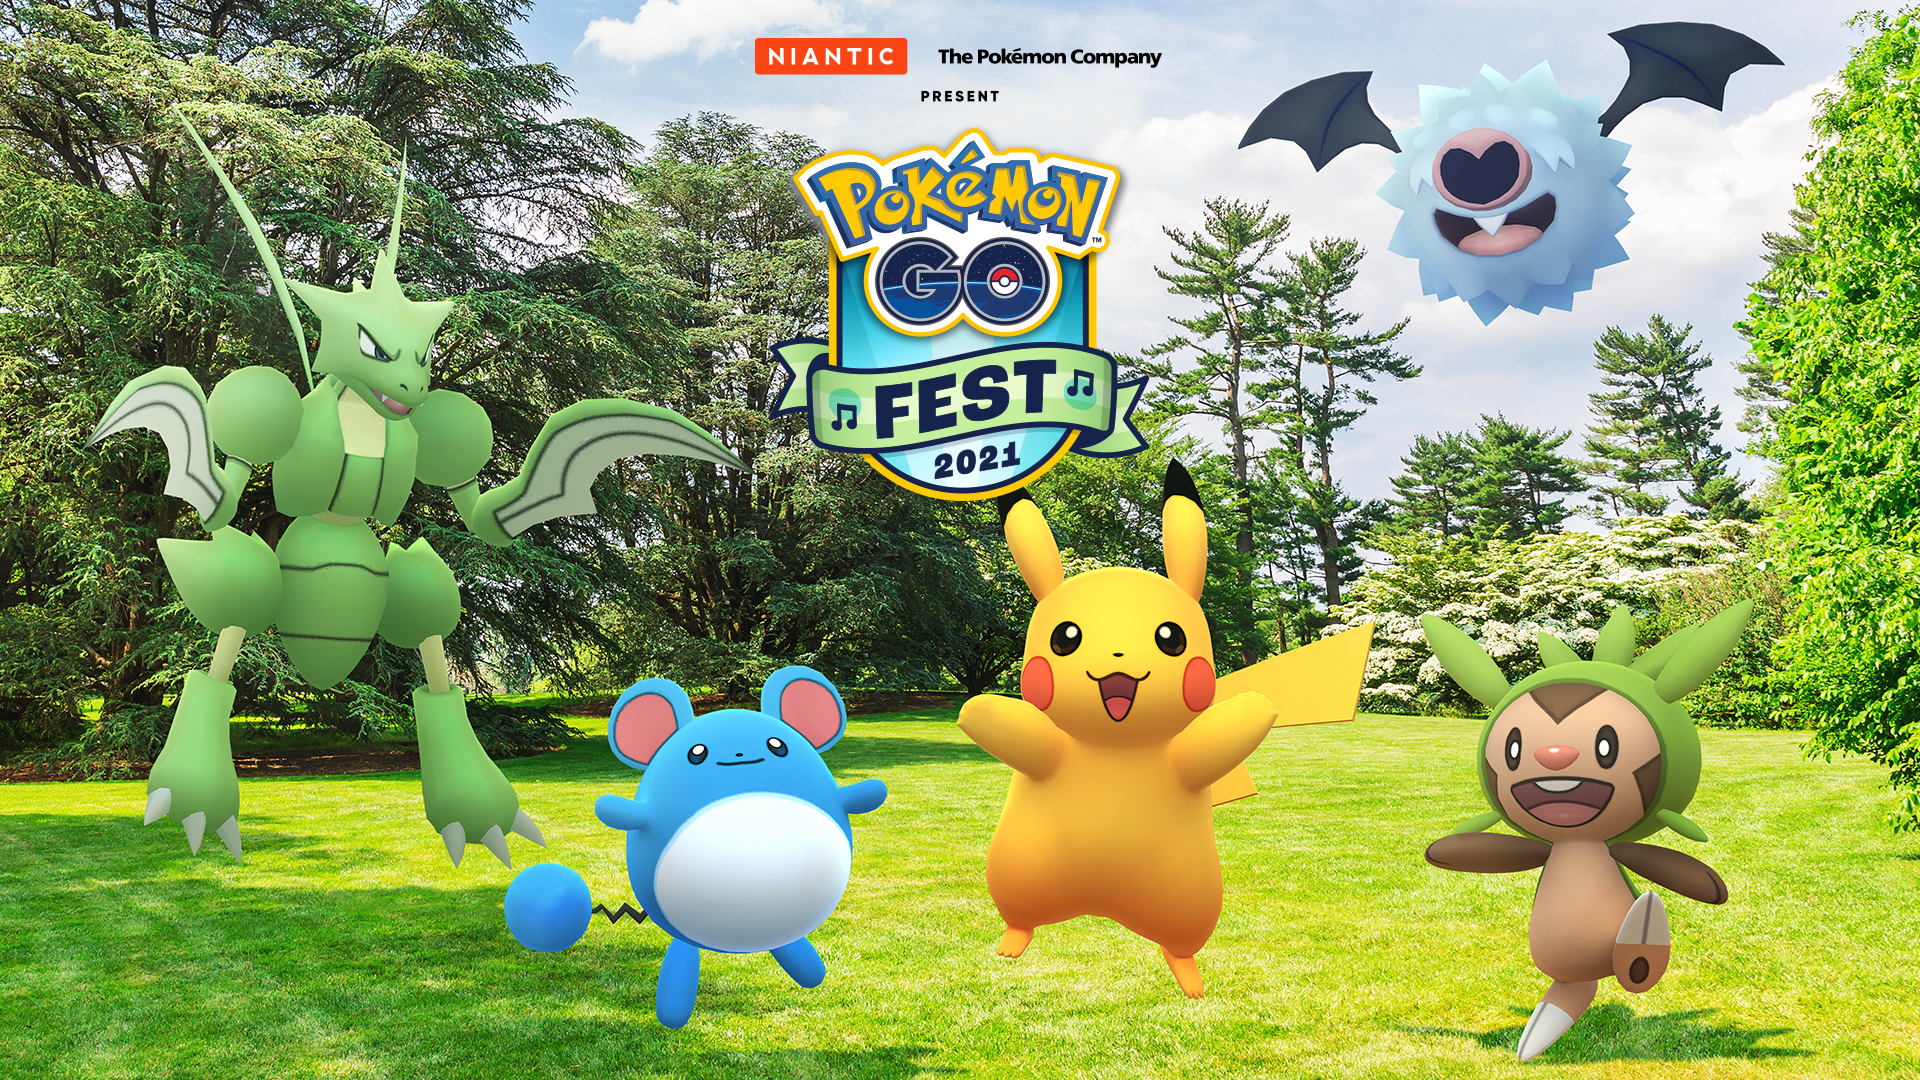 Pokémon GO: Hyperbonus Part 3 before the start - all information about the event